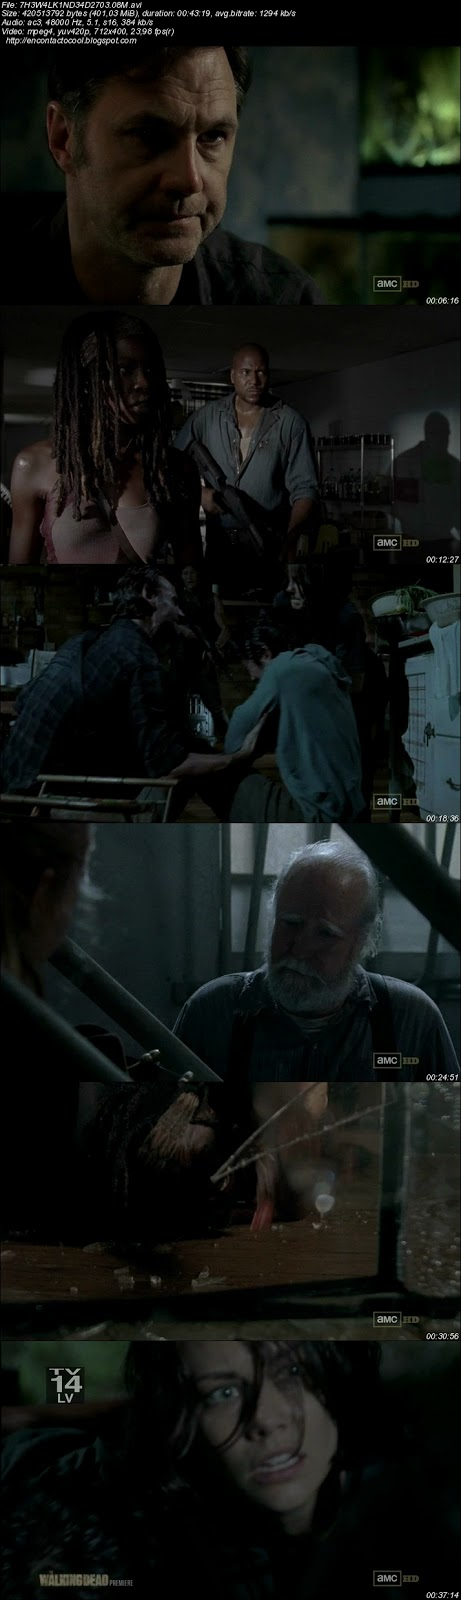 The walking dead 3x08